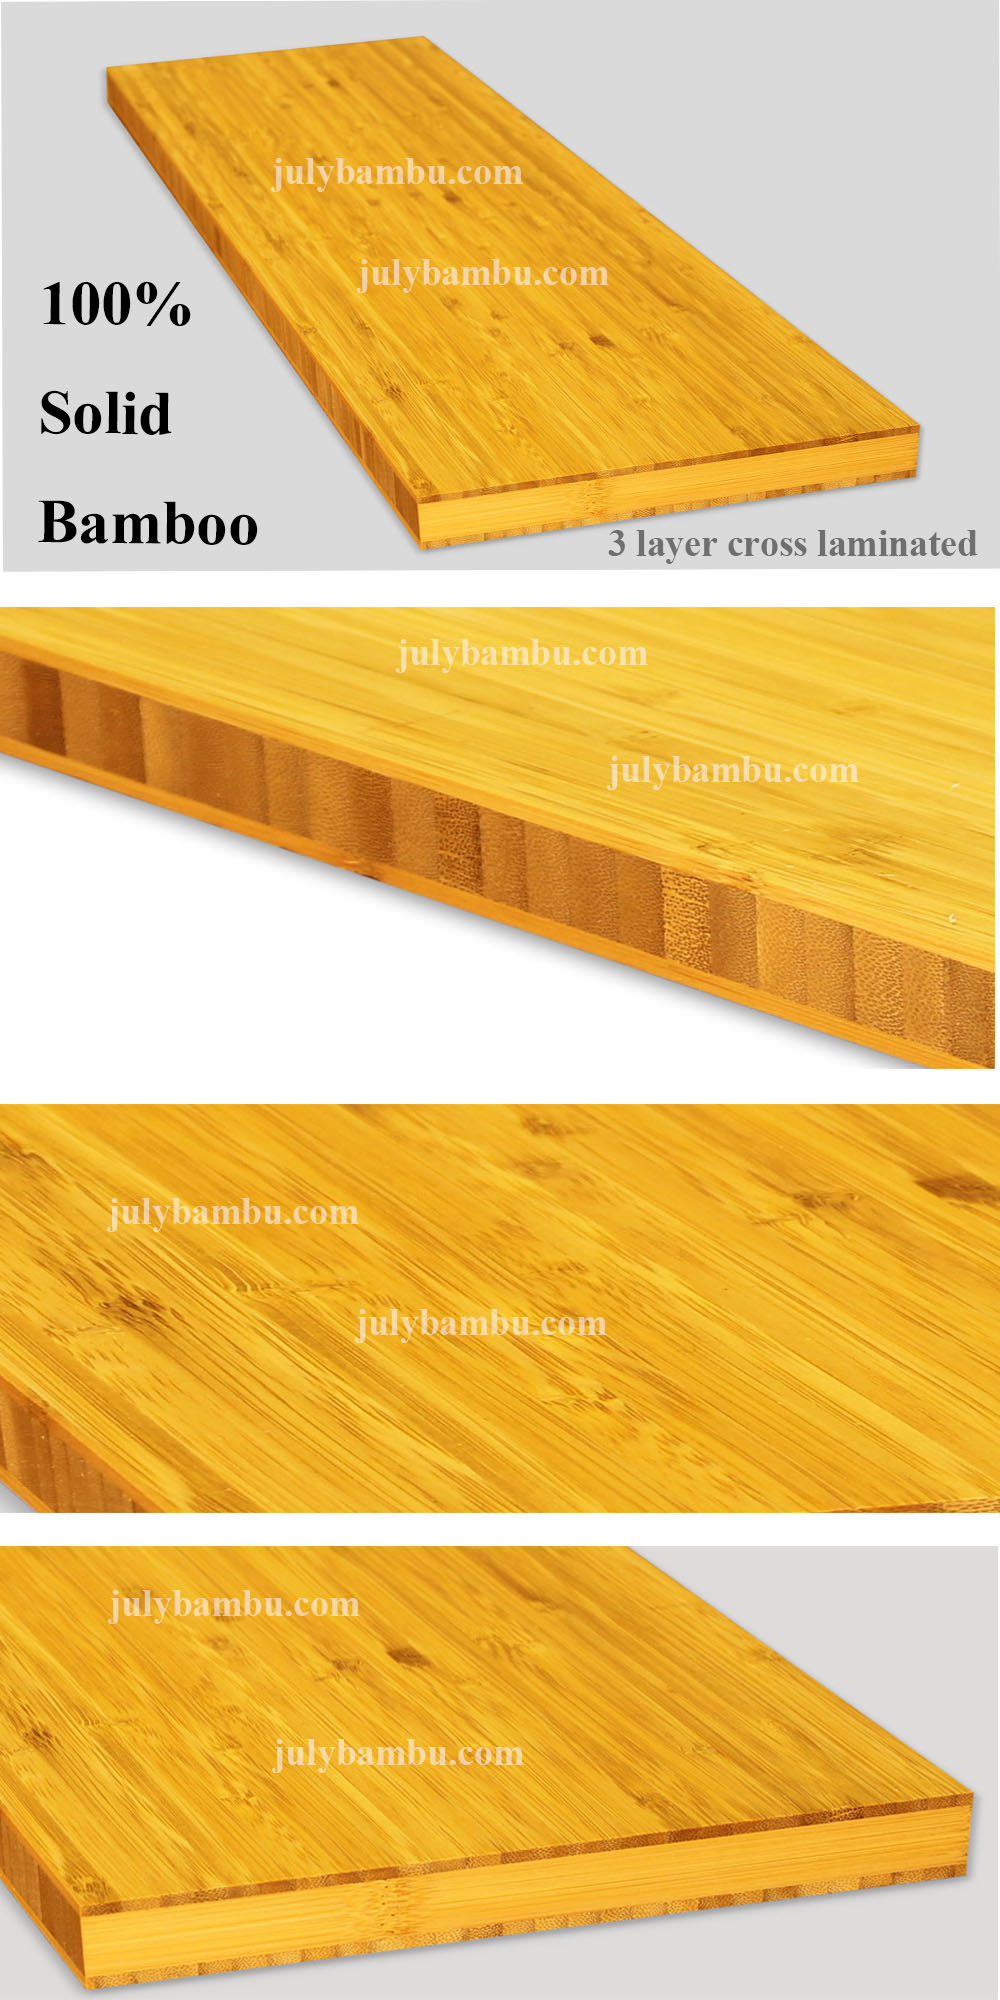 3 layer bamboo plywood.jpg